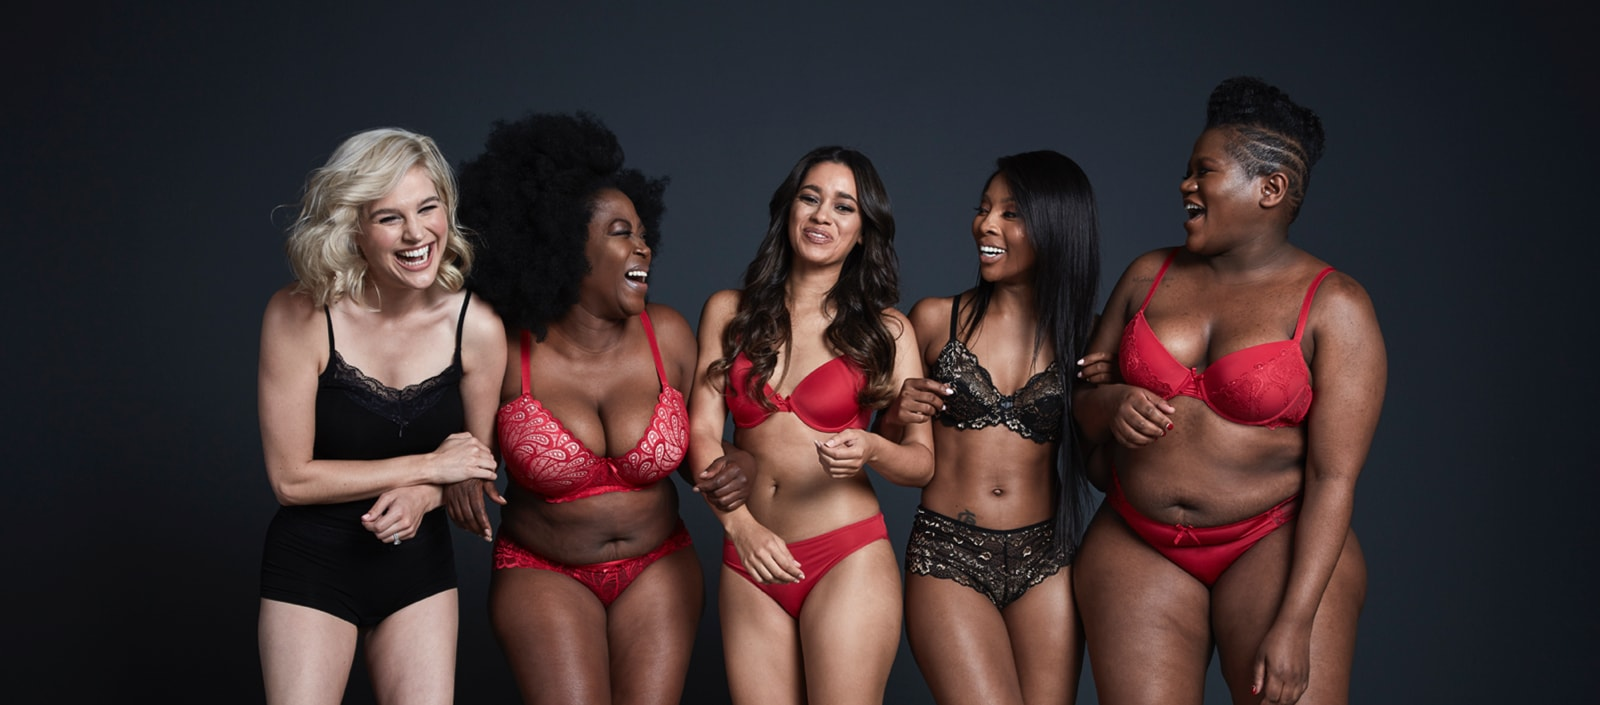 c20b802186cb5 Local Beauts Bare It All In  IAmMe Lingerie Campaign